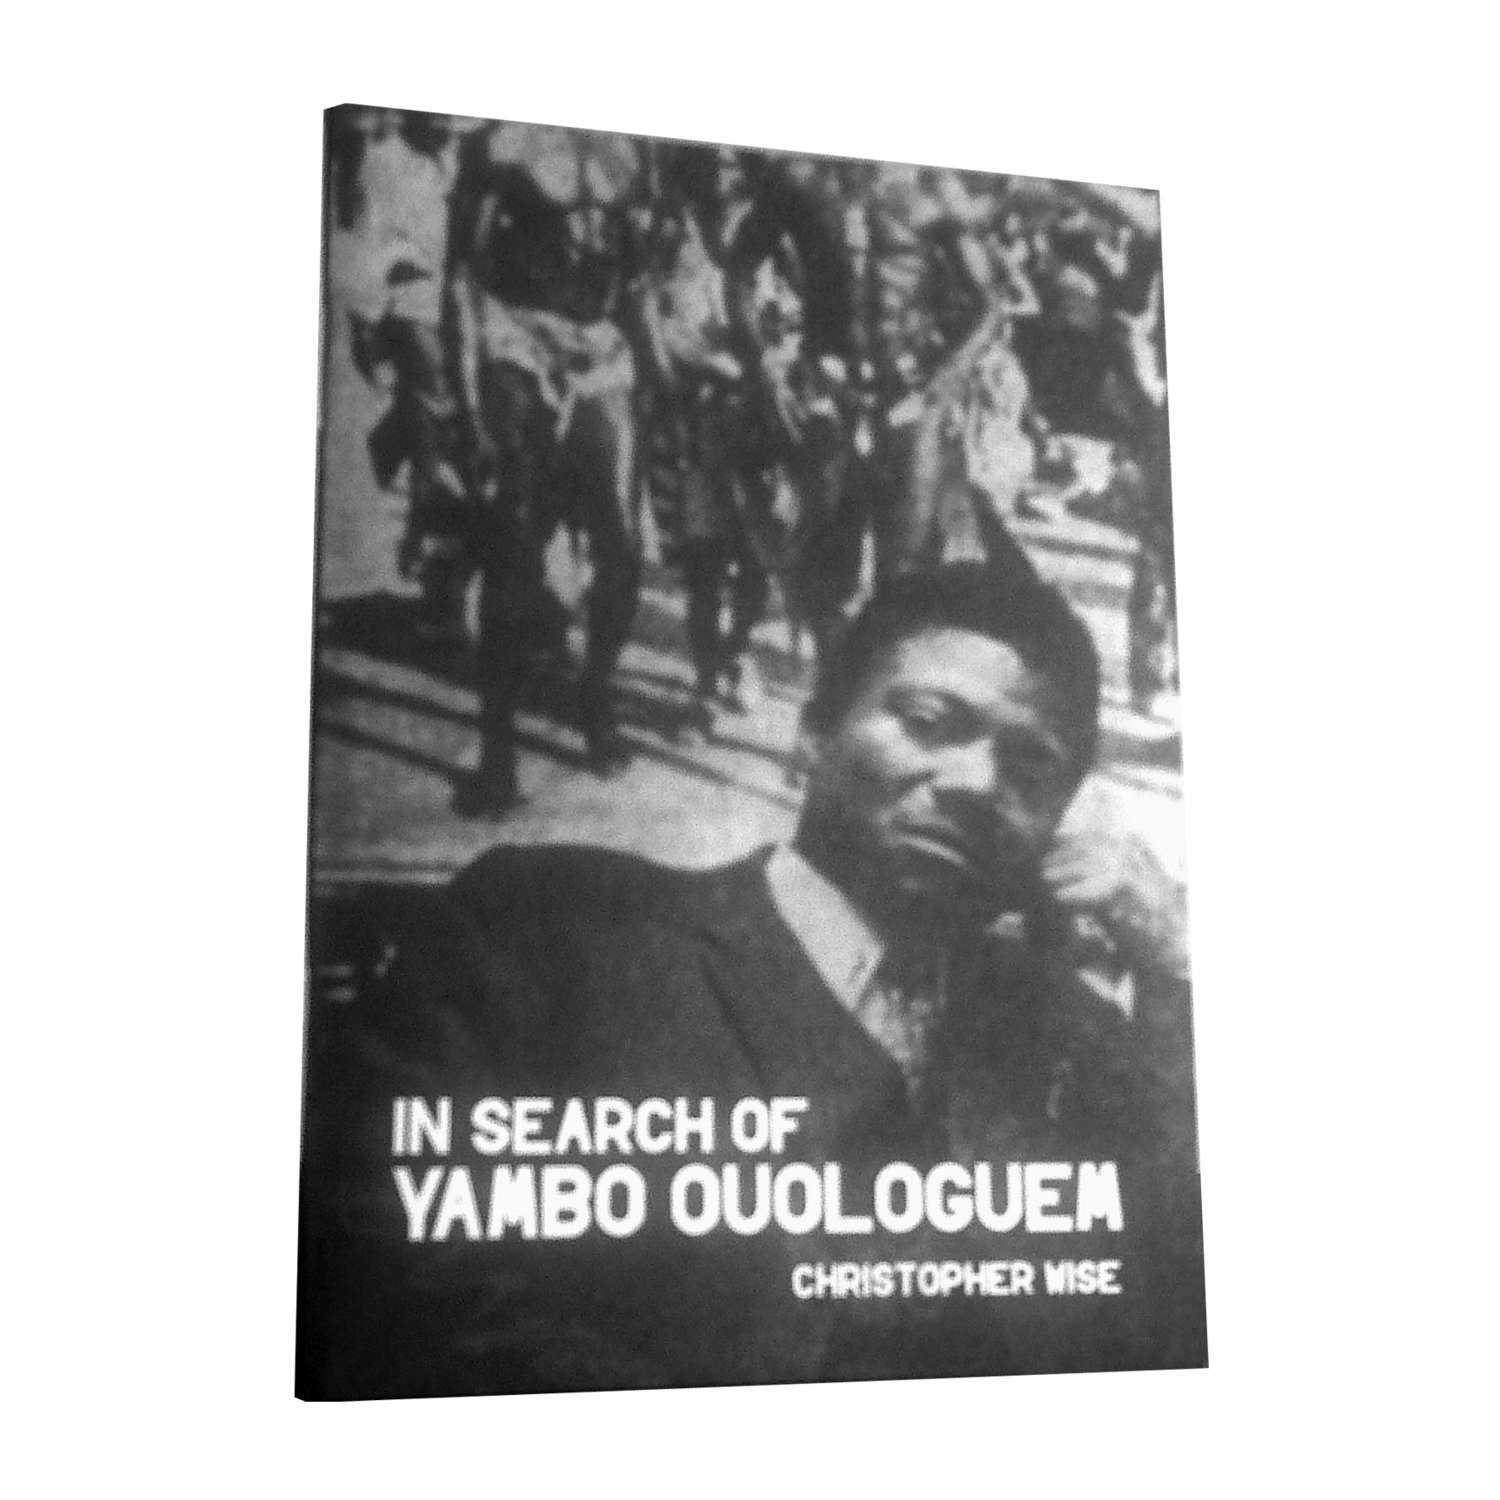 Chimurenganyana Series 2: In Search of Yambo Oluguem by Christopher Wise (June 2012)